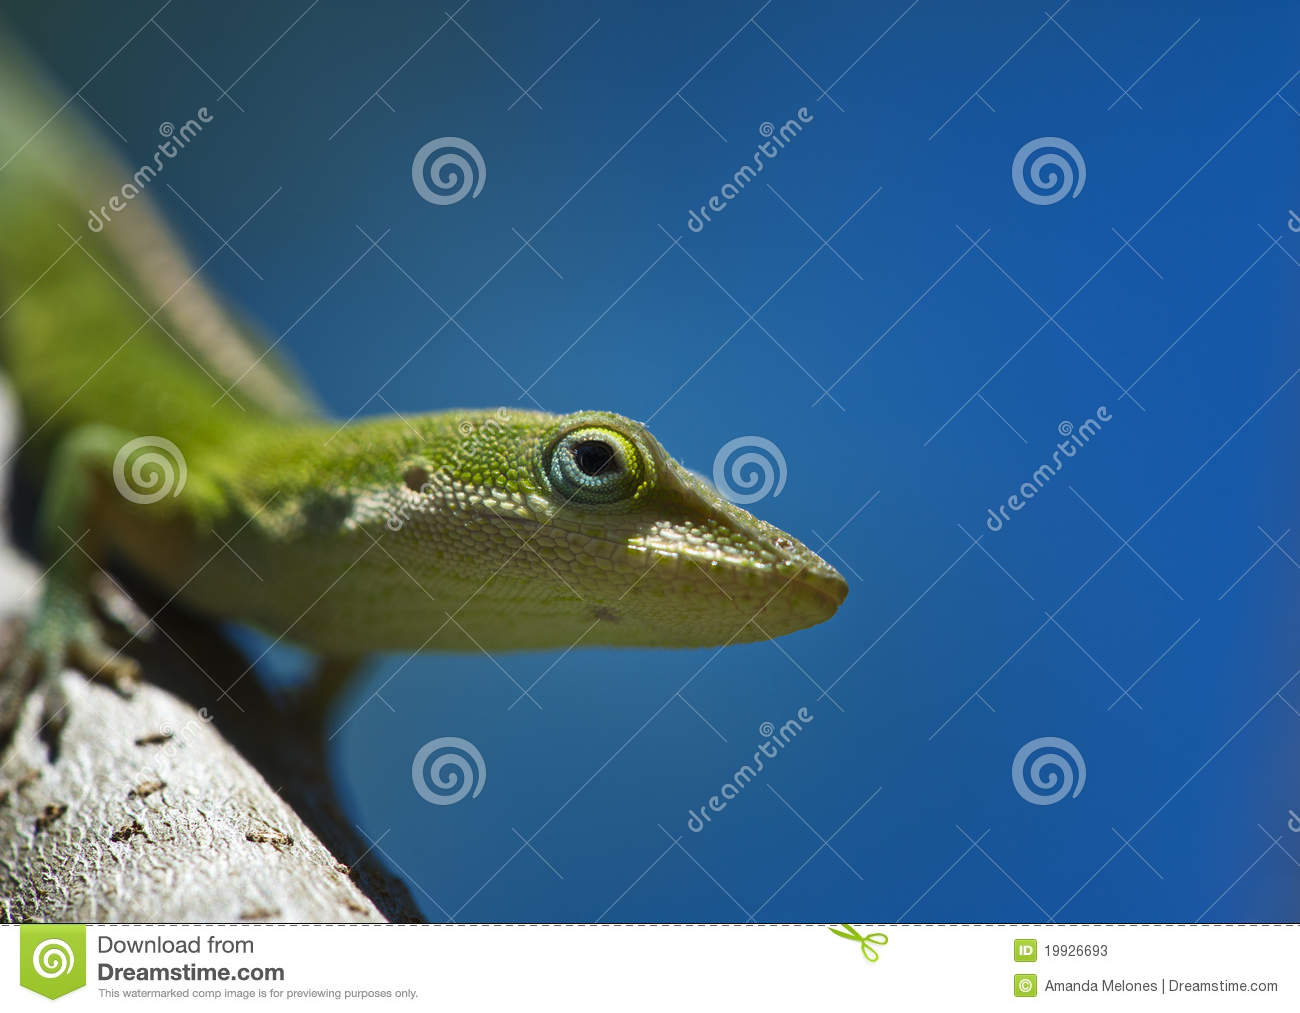 Anole on a branch